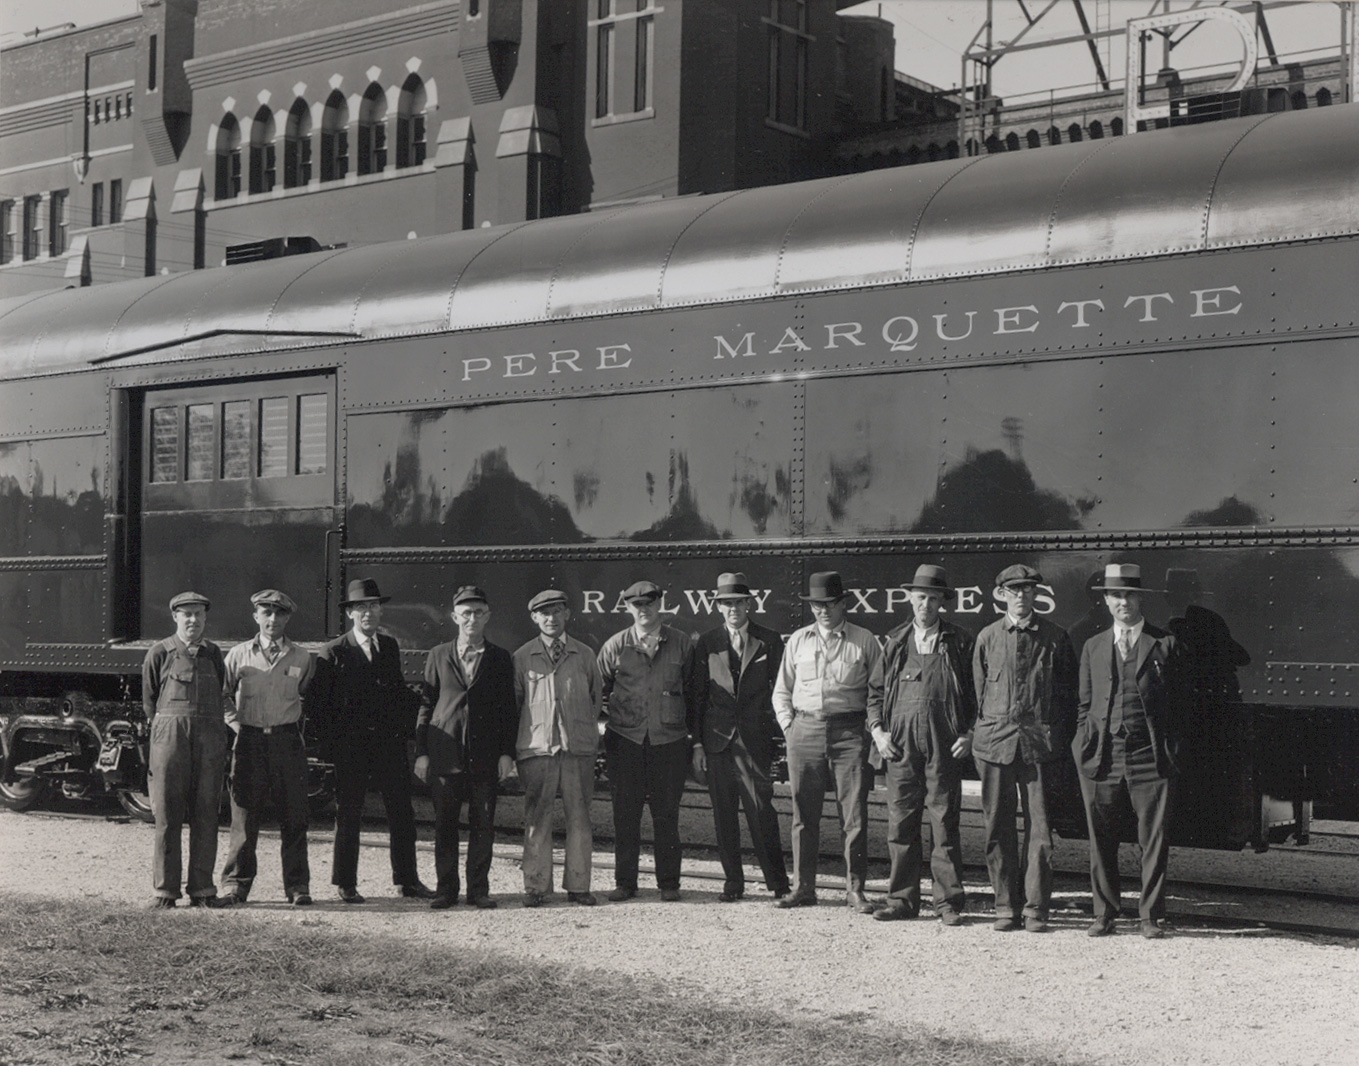 """This photo is believed to be taken right after an inspection of a rail car ordered by the Pere Marquette rail line. The men pictured were likely foremen involved in its production. The man on the right is believed to be a representative of the rail line. He likely made a visit to the fourth floor of the 300 building, which was called the """"booze floor"""" to sip whiskey before inspecting the car and taking delivery."""